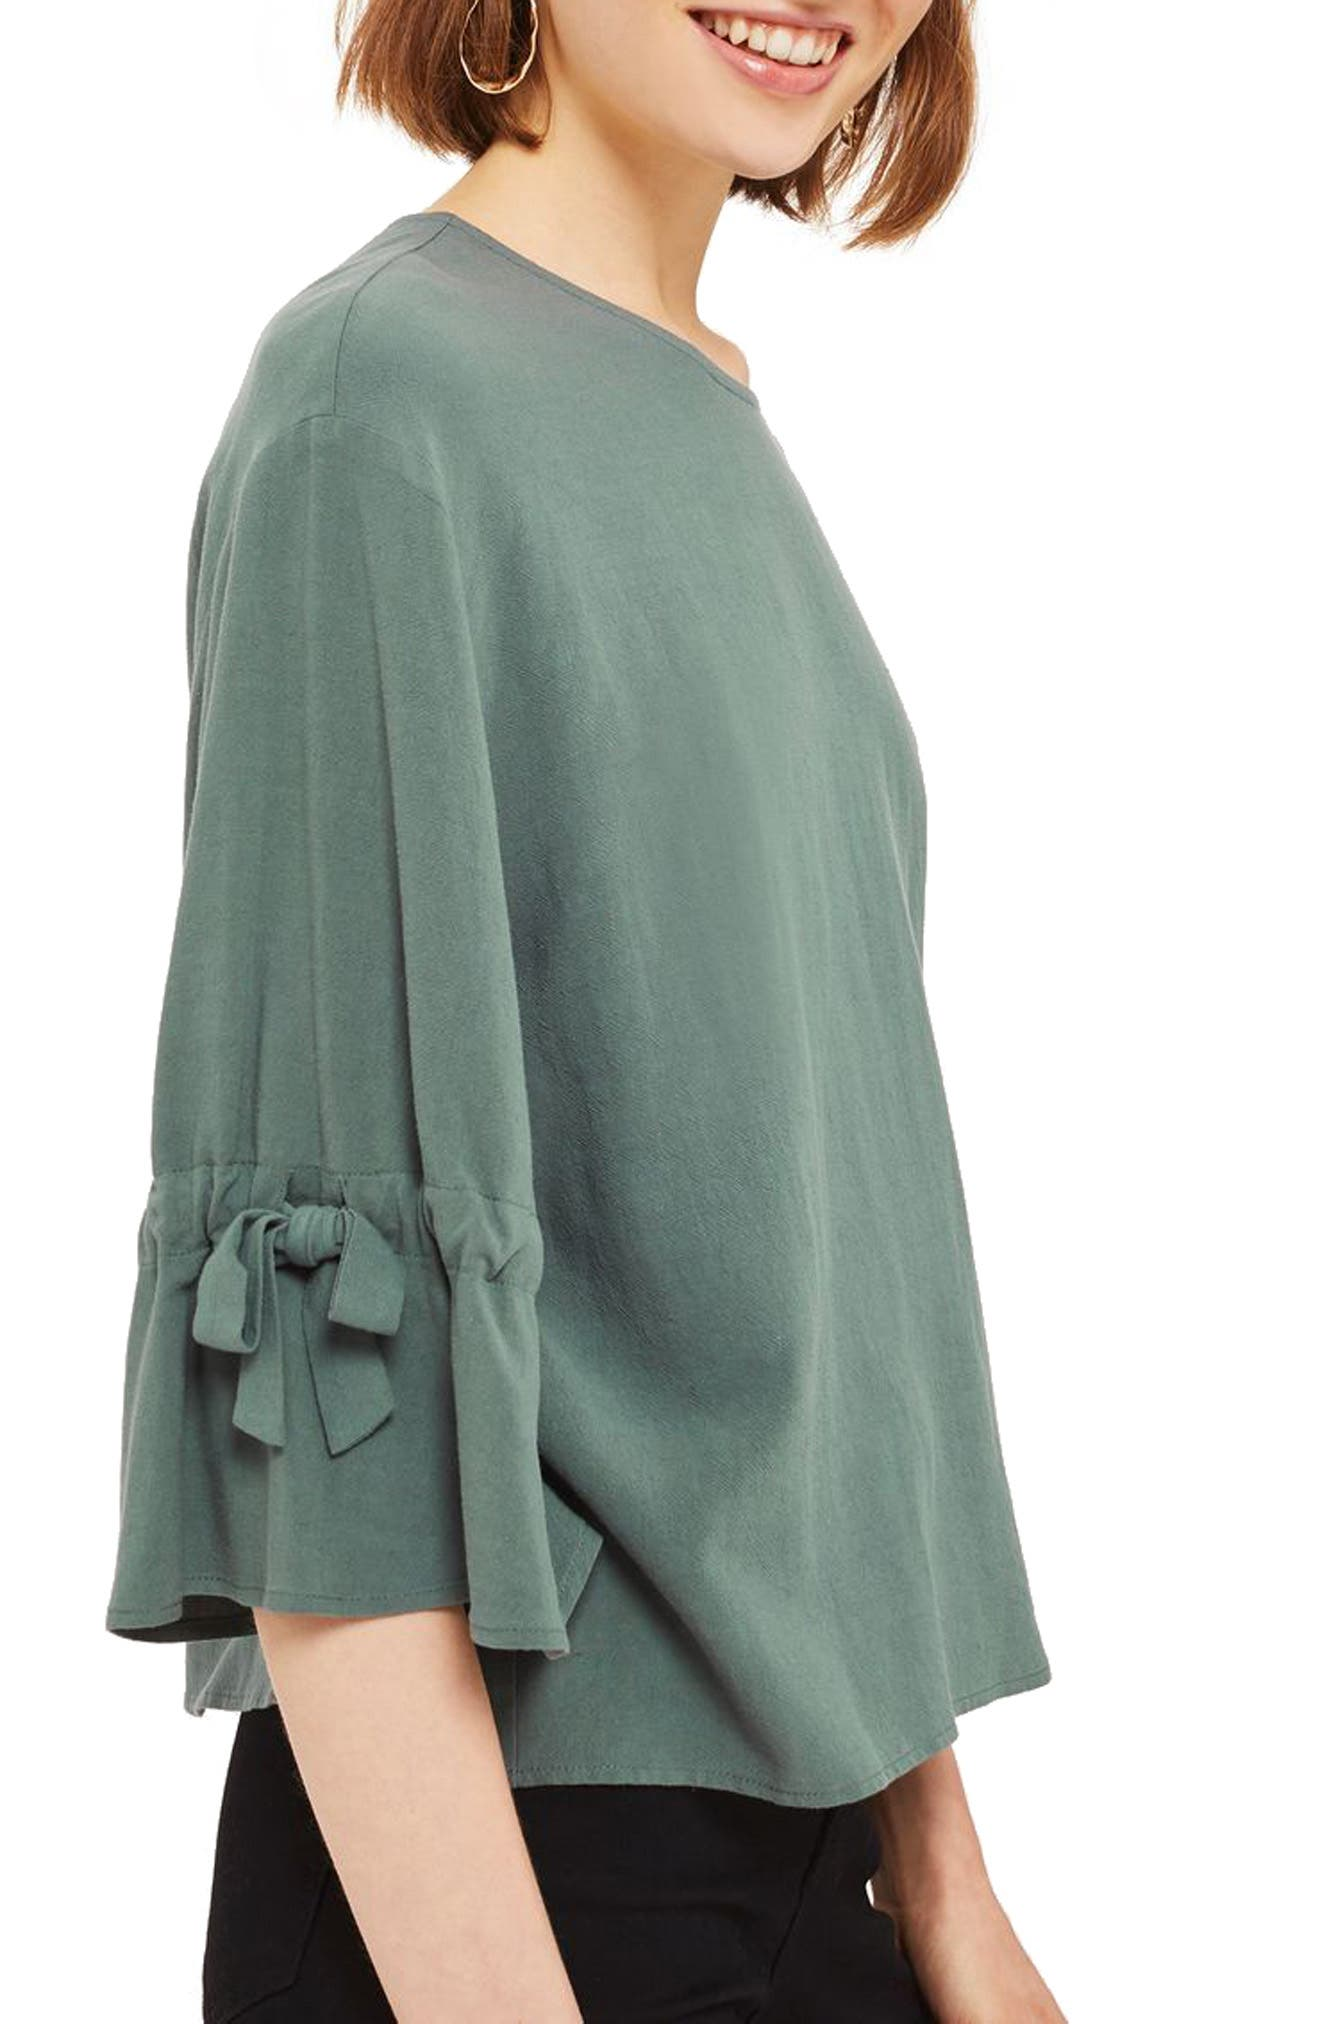 Molly Tie Sleeve Blouse,                             Main thumbnail 1, color,                             Petrol